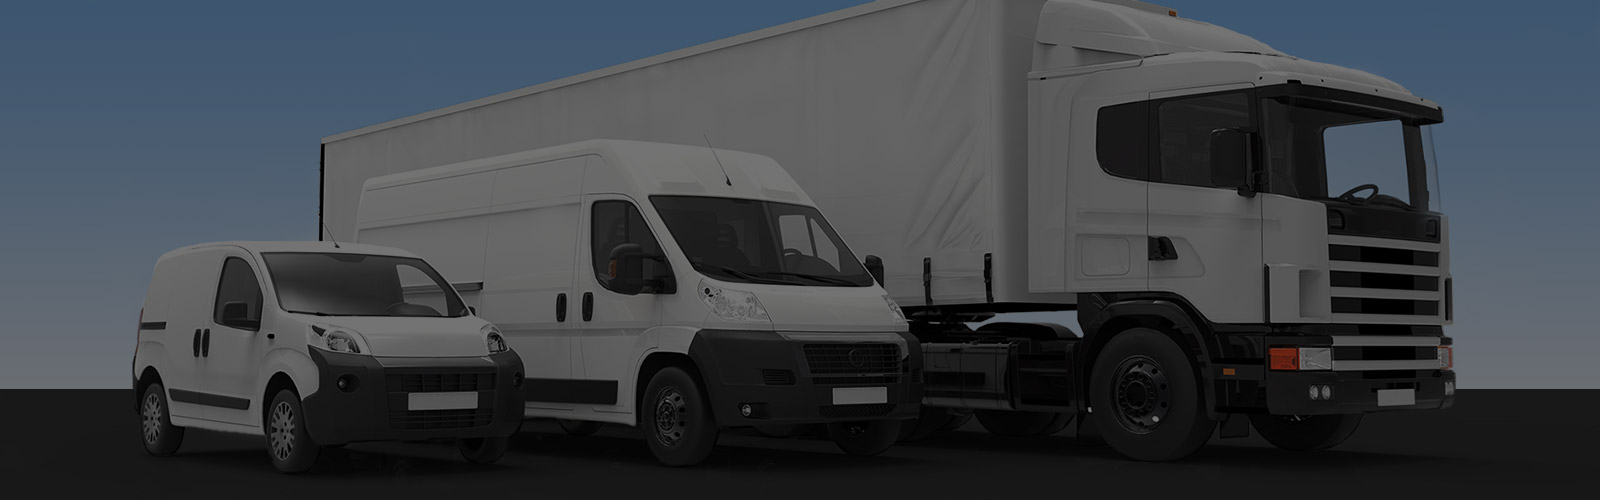 collision repairs for commercial vehicles